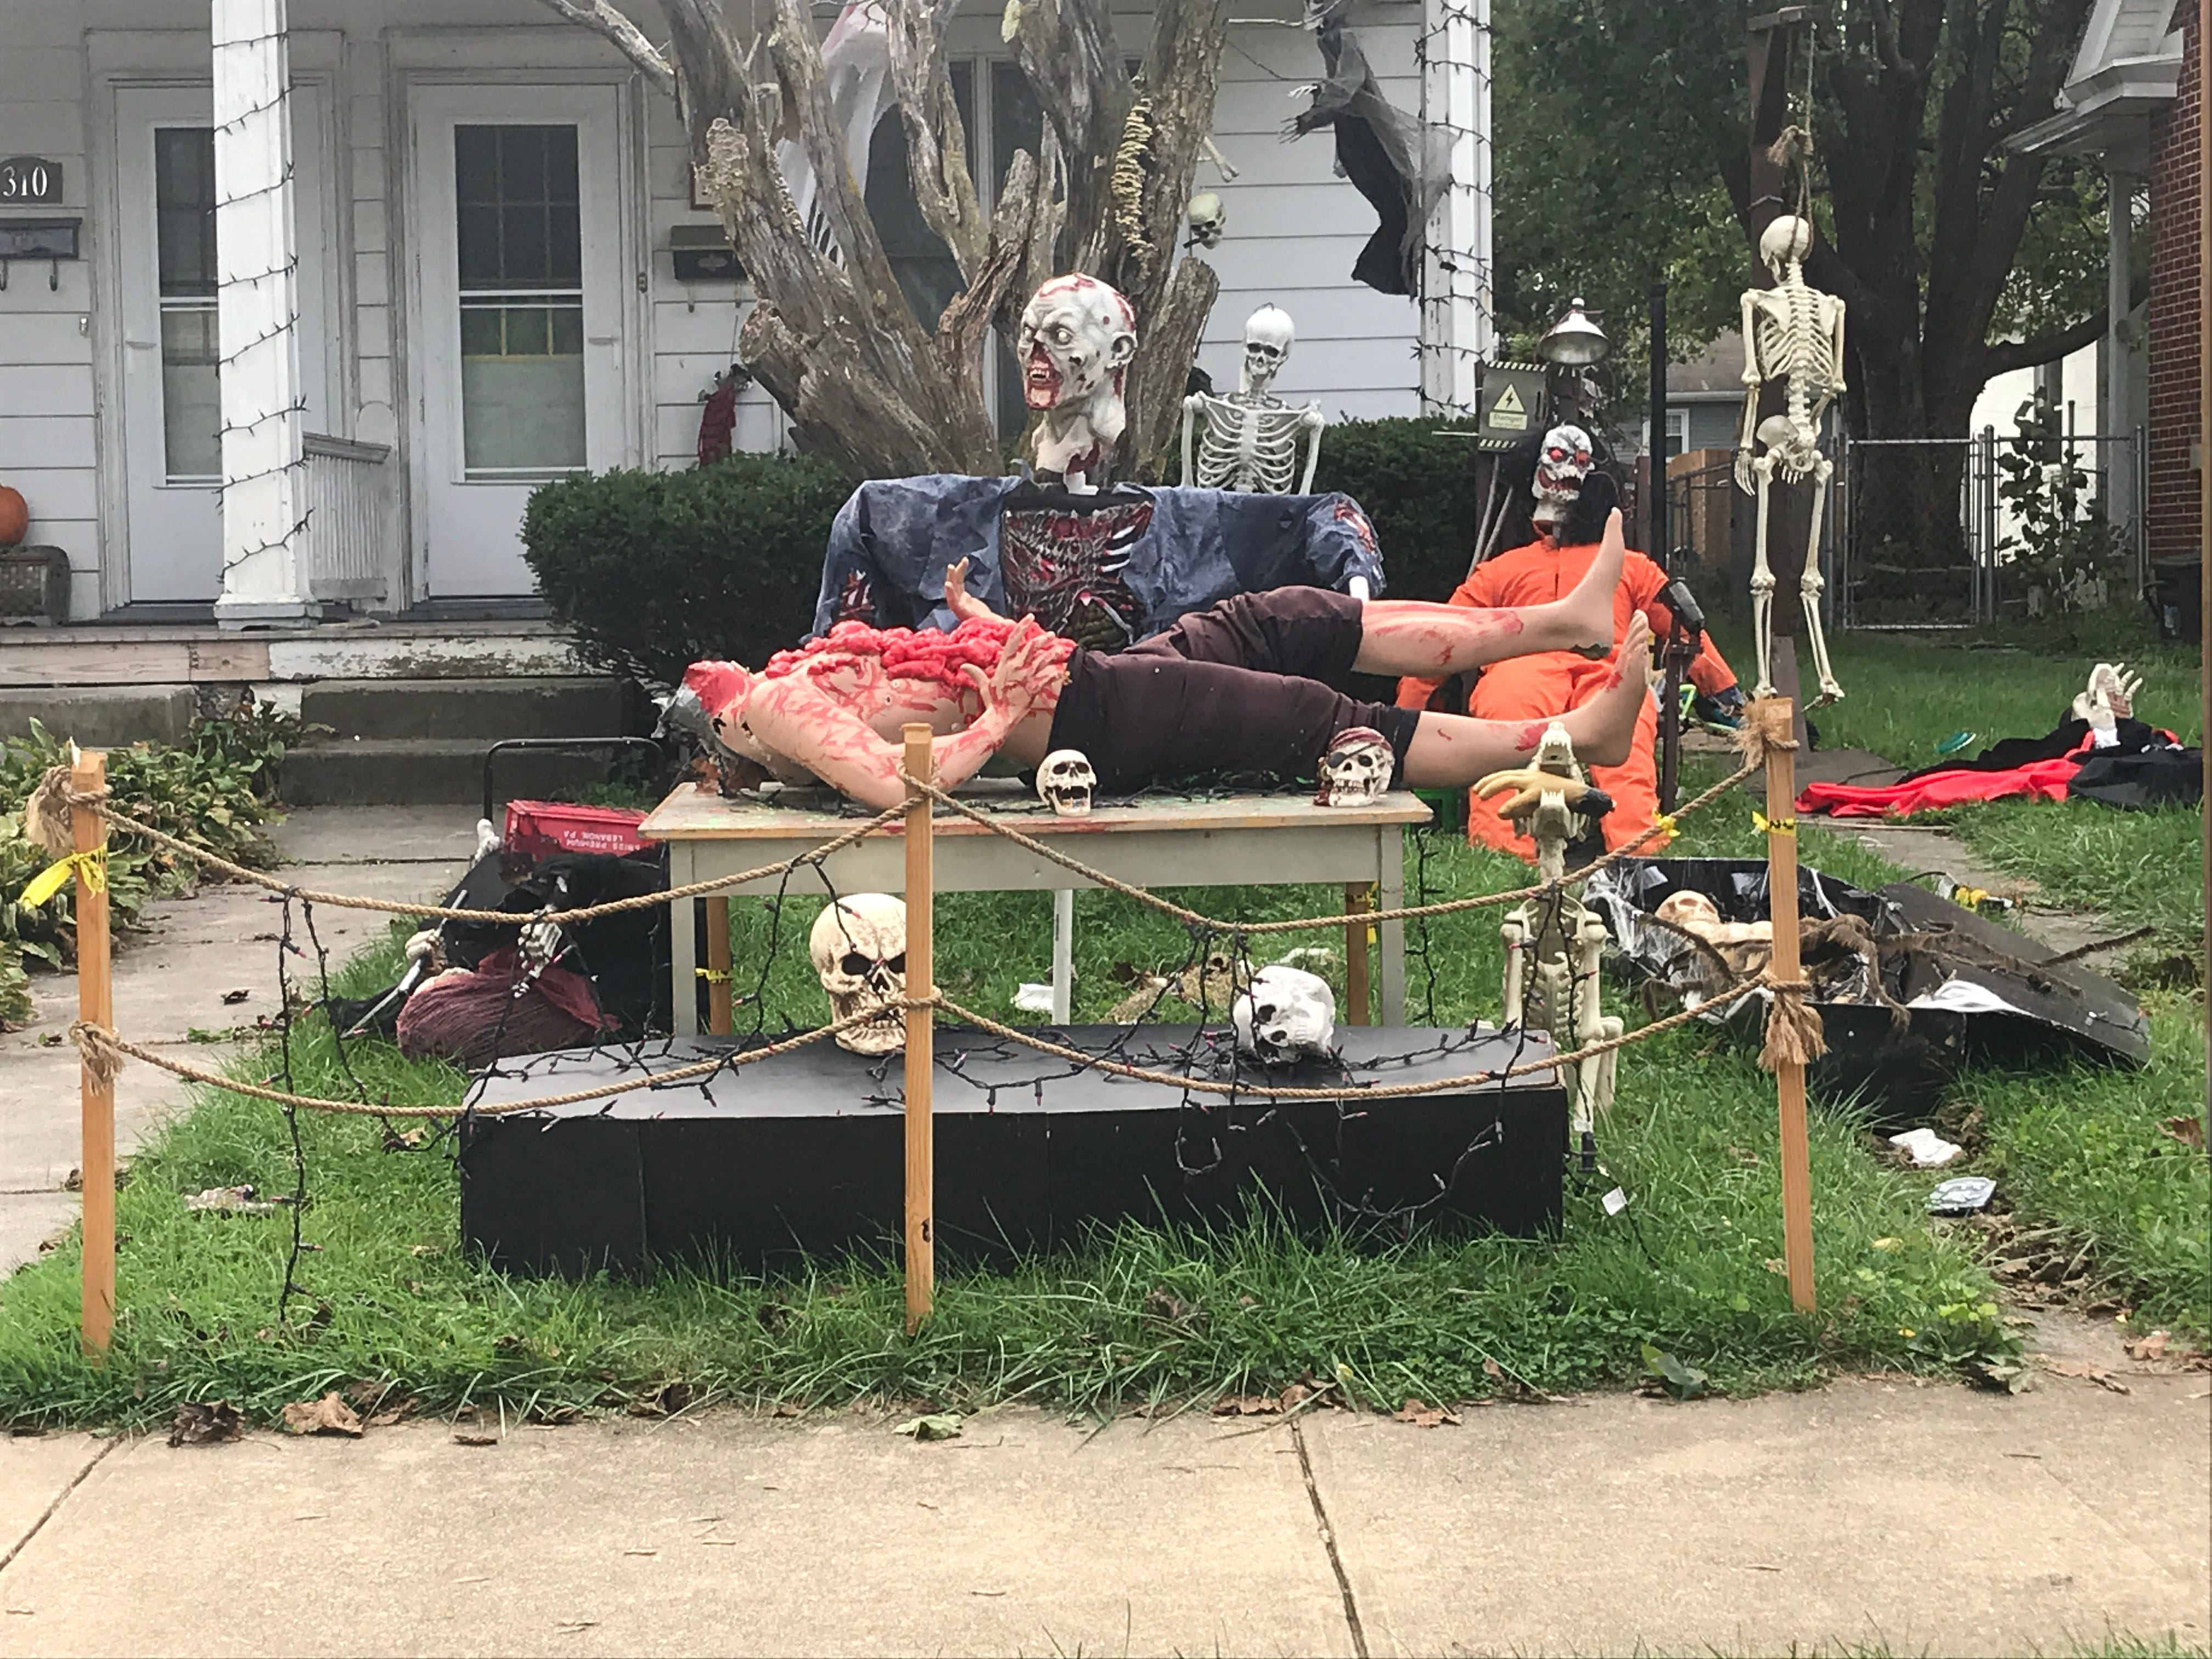 A home on Cherry Street in Palmyra is prepared for Halloween.